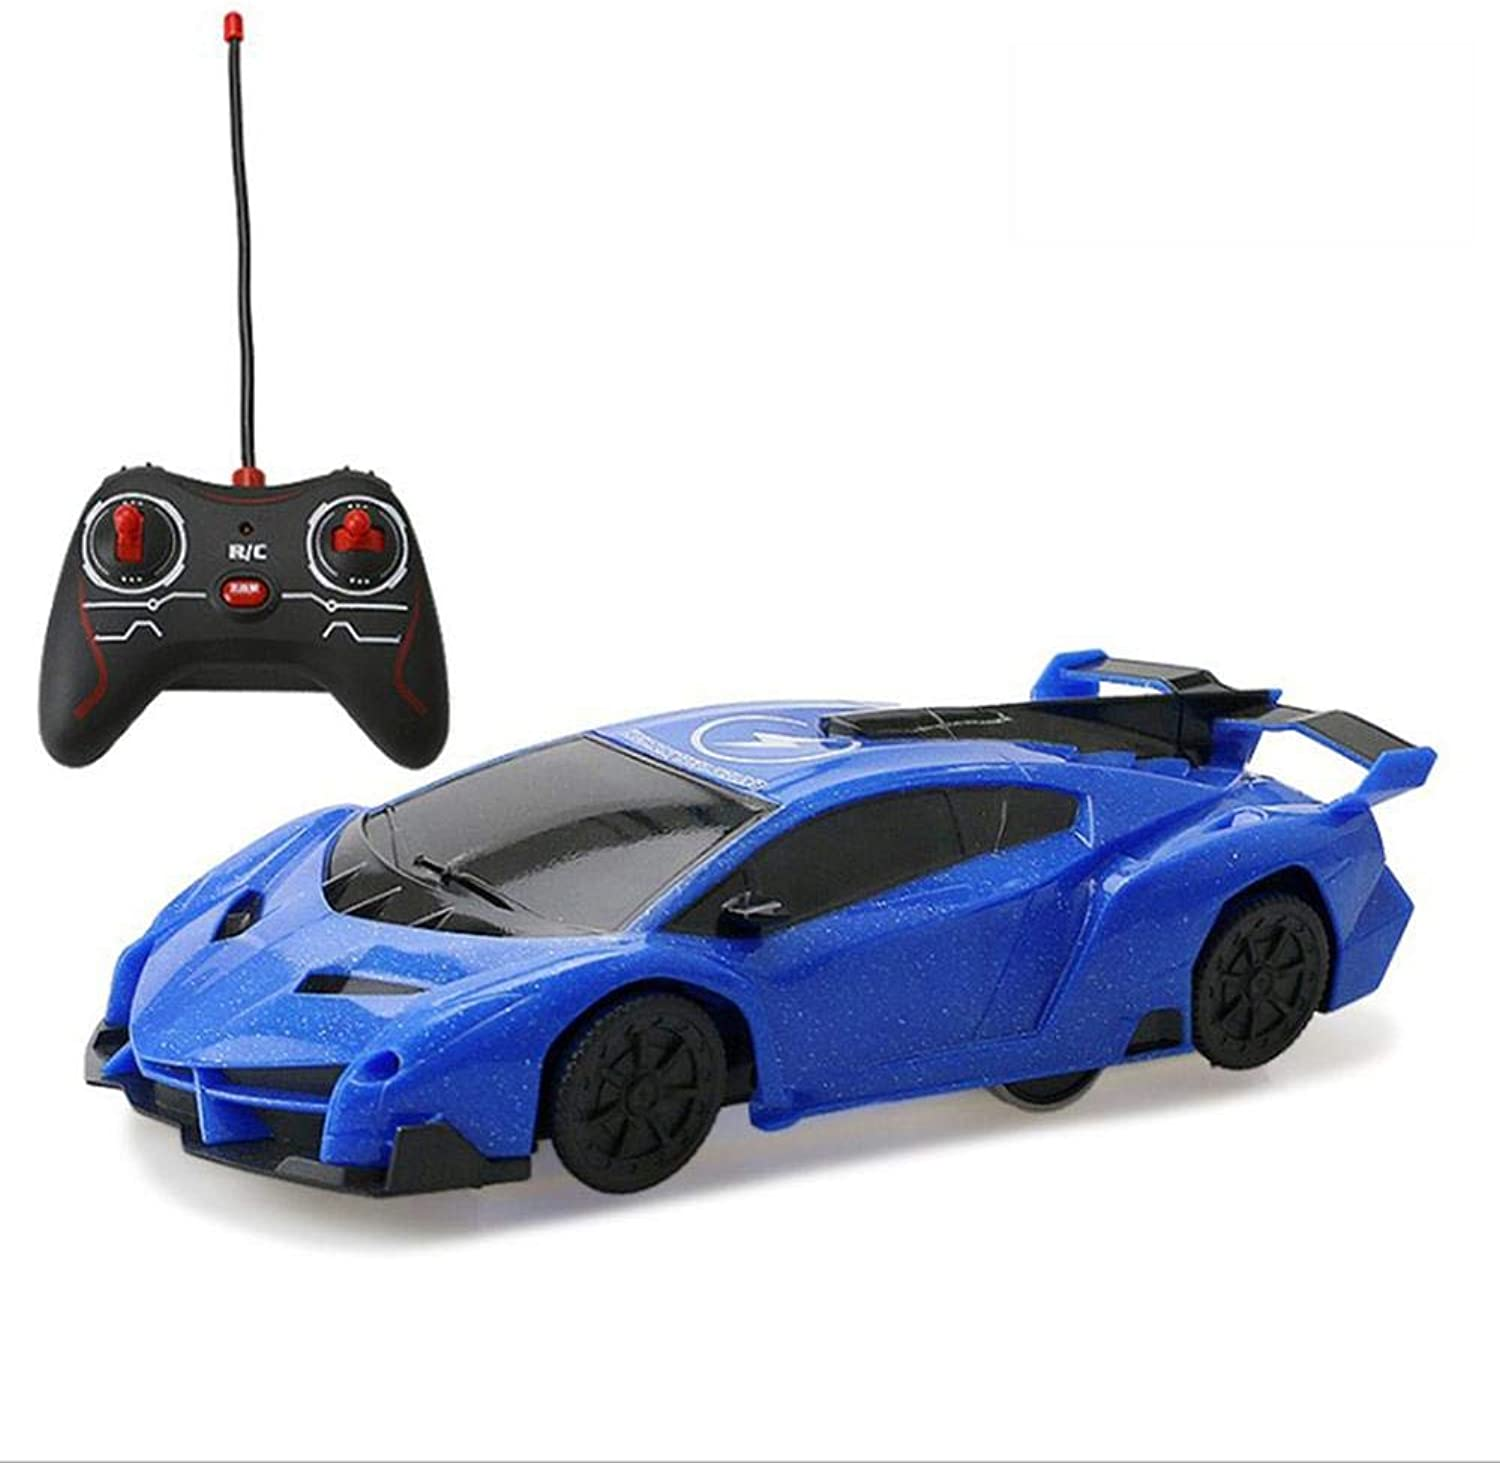 Generic Remote Control Car Toy Wall Climber Car Electric Toy RC Car Wall Climbing Mini Car Vehicle Toys for Kids Boy Birthday Gift Toys bluee